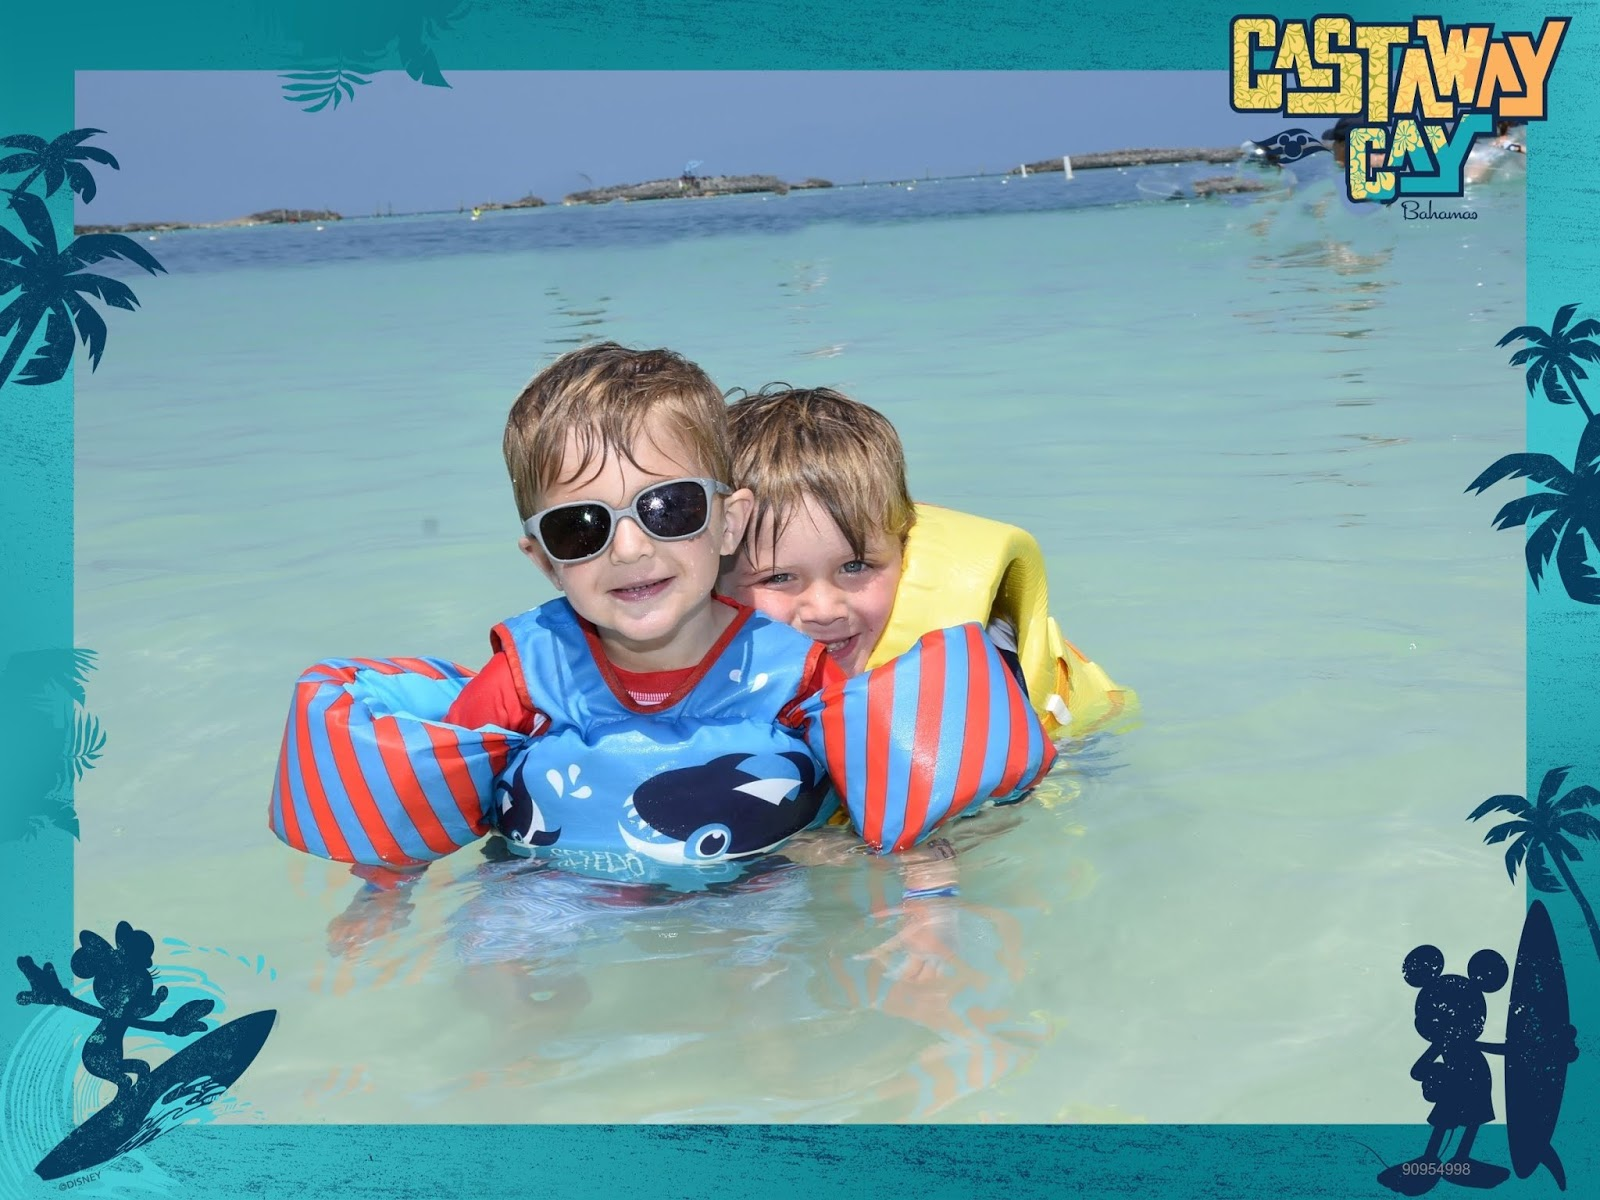 disney cruise tips, best cruise ever, disney dream cruise, cruise with a baby, cruise with a toddler, best tips for cruising, best tips for cruising with a toddler, date night on a cruise, port adventures disney, castaway cay disney cruise, nassau disney dream, nassau port adventure, nassau port